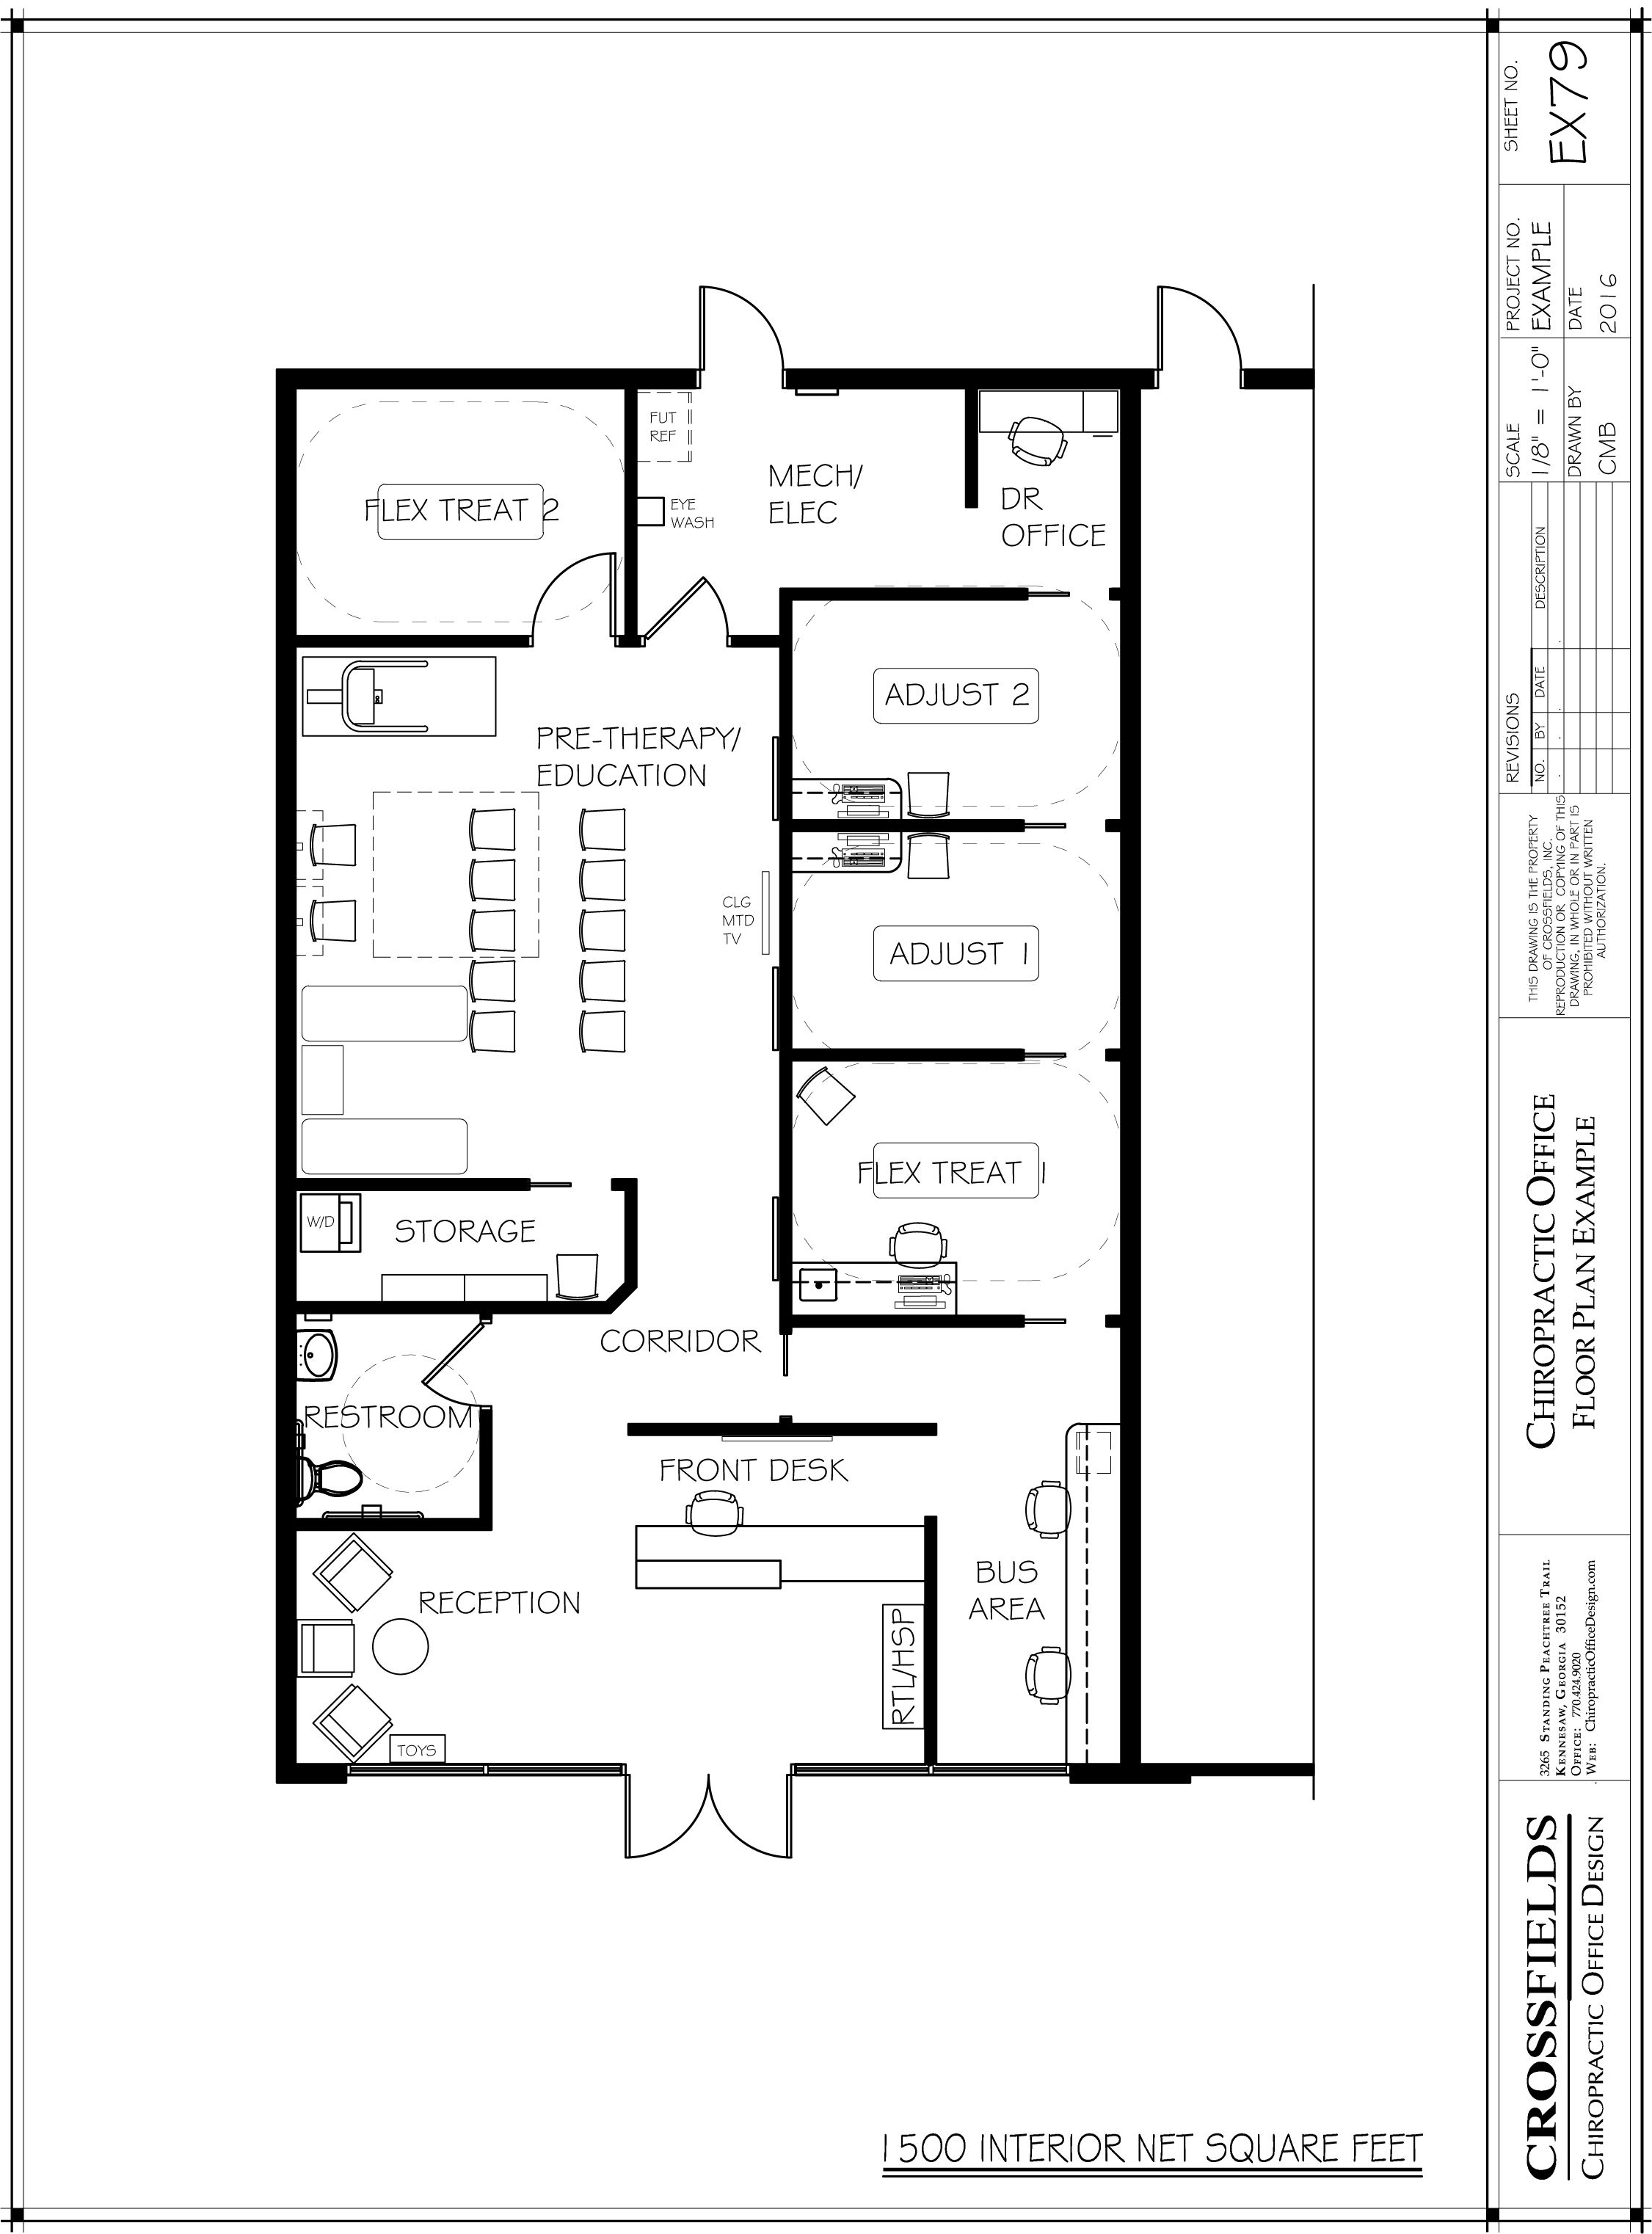 Chiropractic Office Floor Plans Versatile Medical Office Layouts Office Floor Plan Office Layout Cafe Shop Design